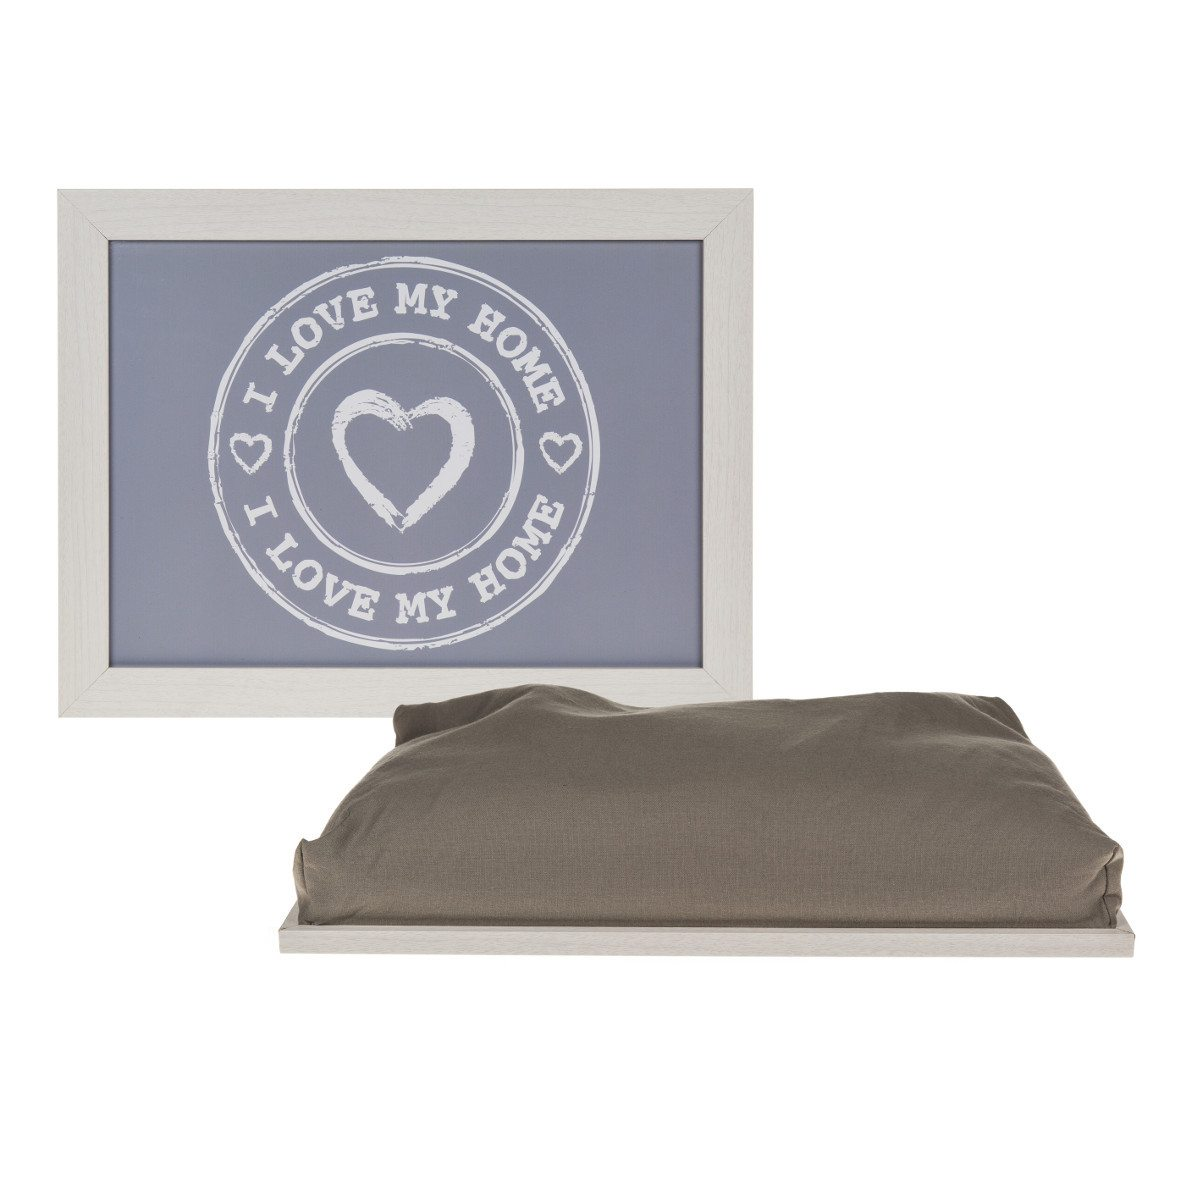 Tablette et coussin - I love my home